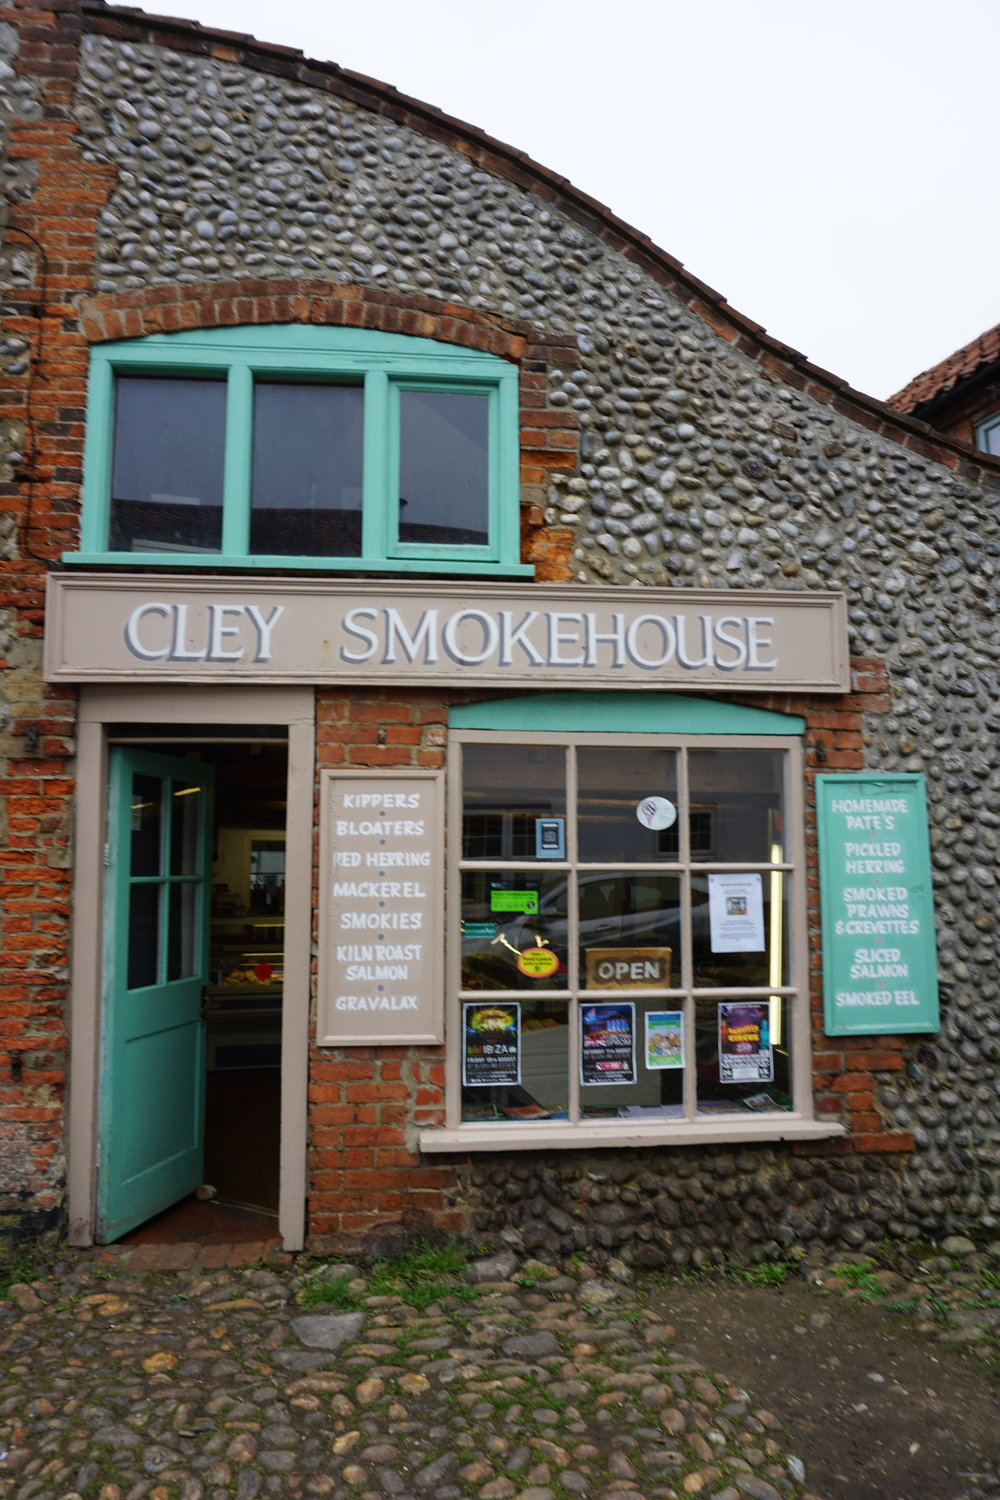 Smokehouse in Cley